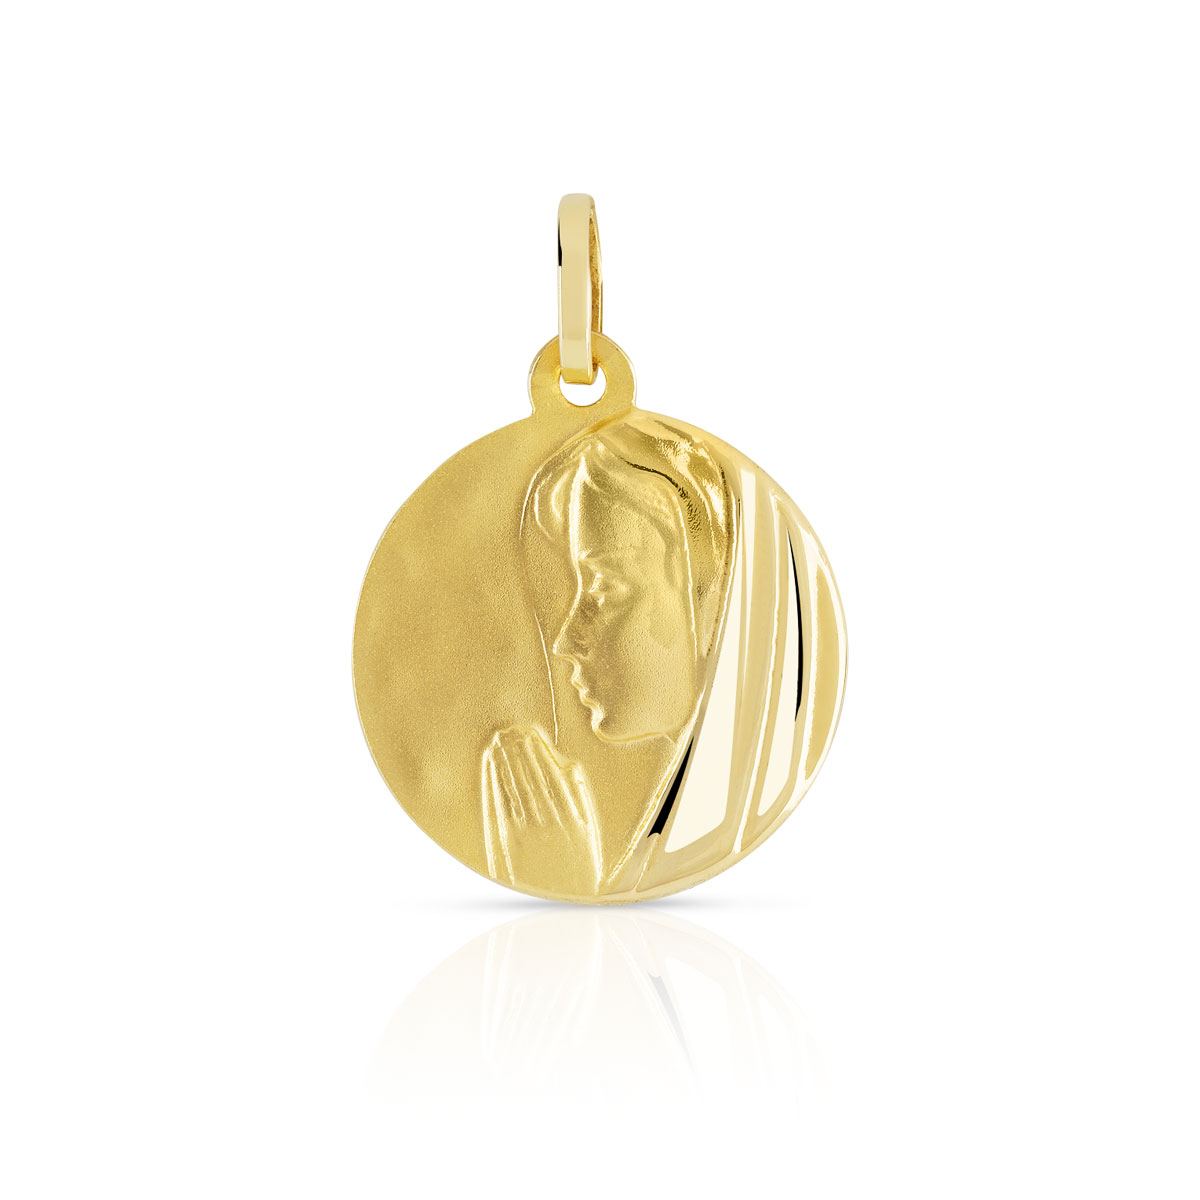 Medaille or 750 jaune